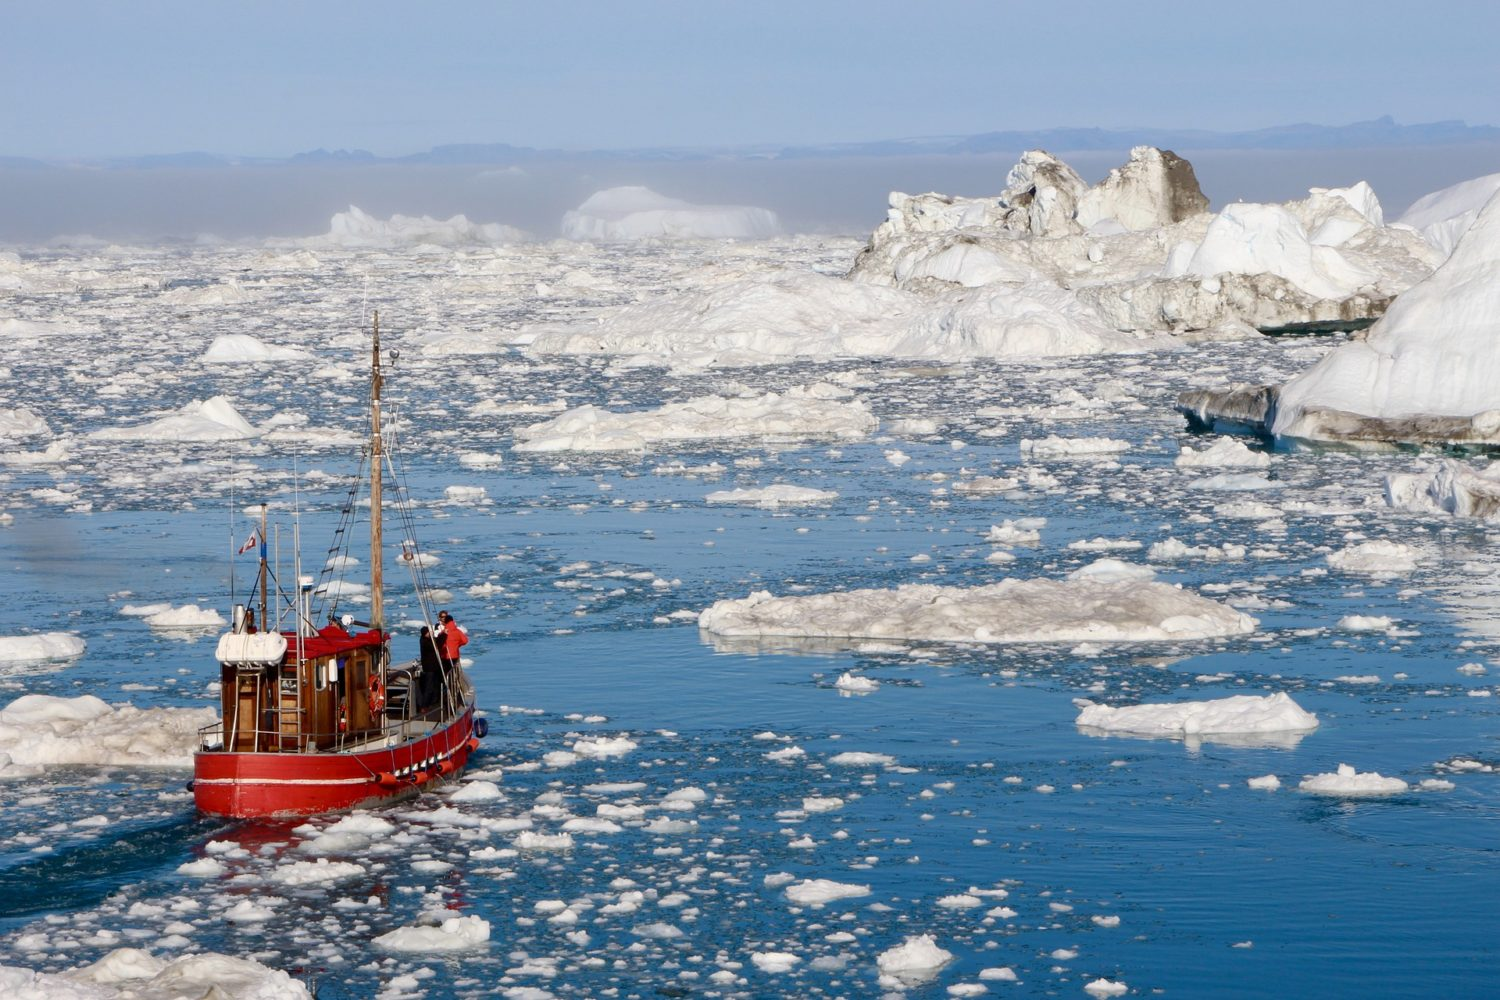 Icebergs are a popular sightseeing stop in Greenland.